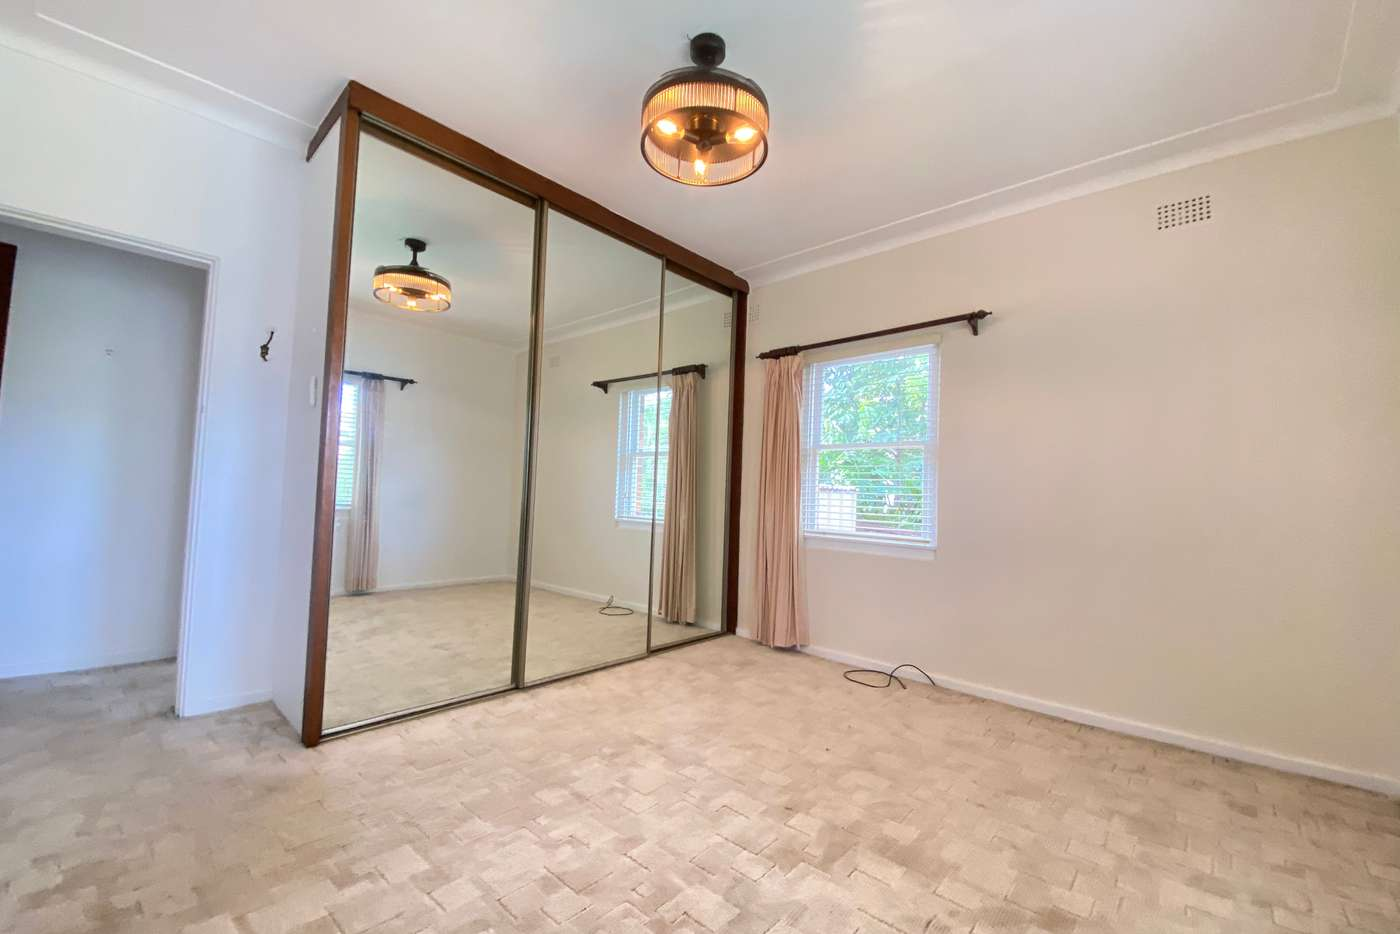 Sixth view of Homely house listing, 8 Docos Crescent, Bexley NSW 2207